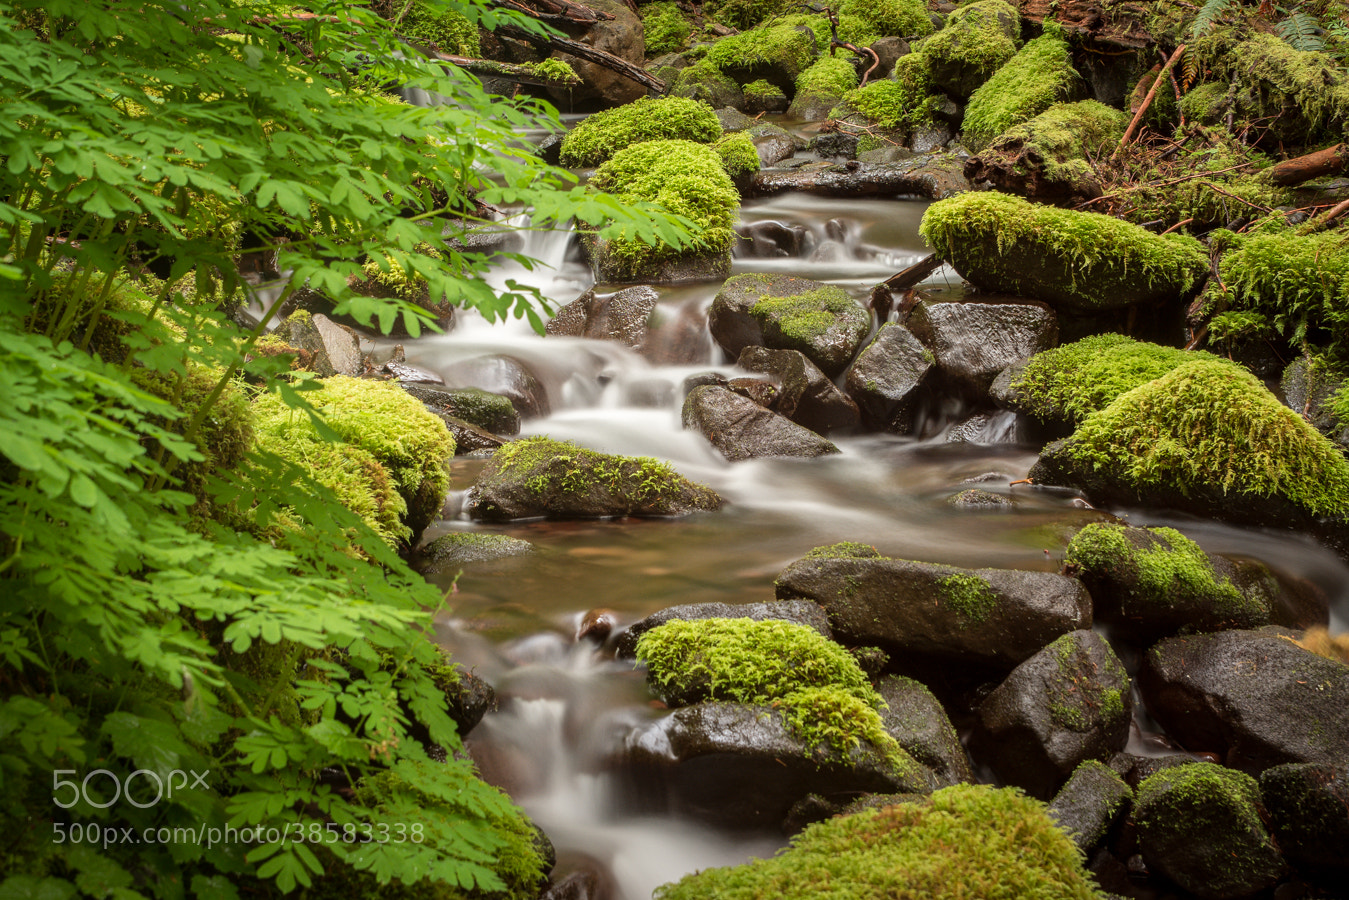 Photograph Gently Down The Stream by Stevan Tontich on 500px